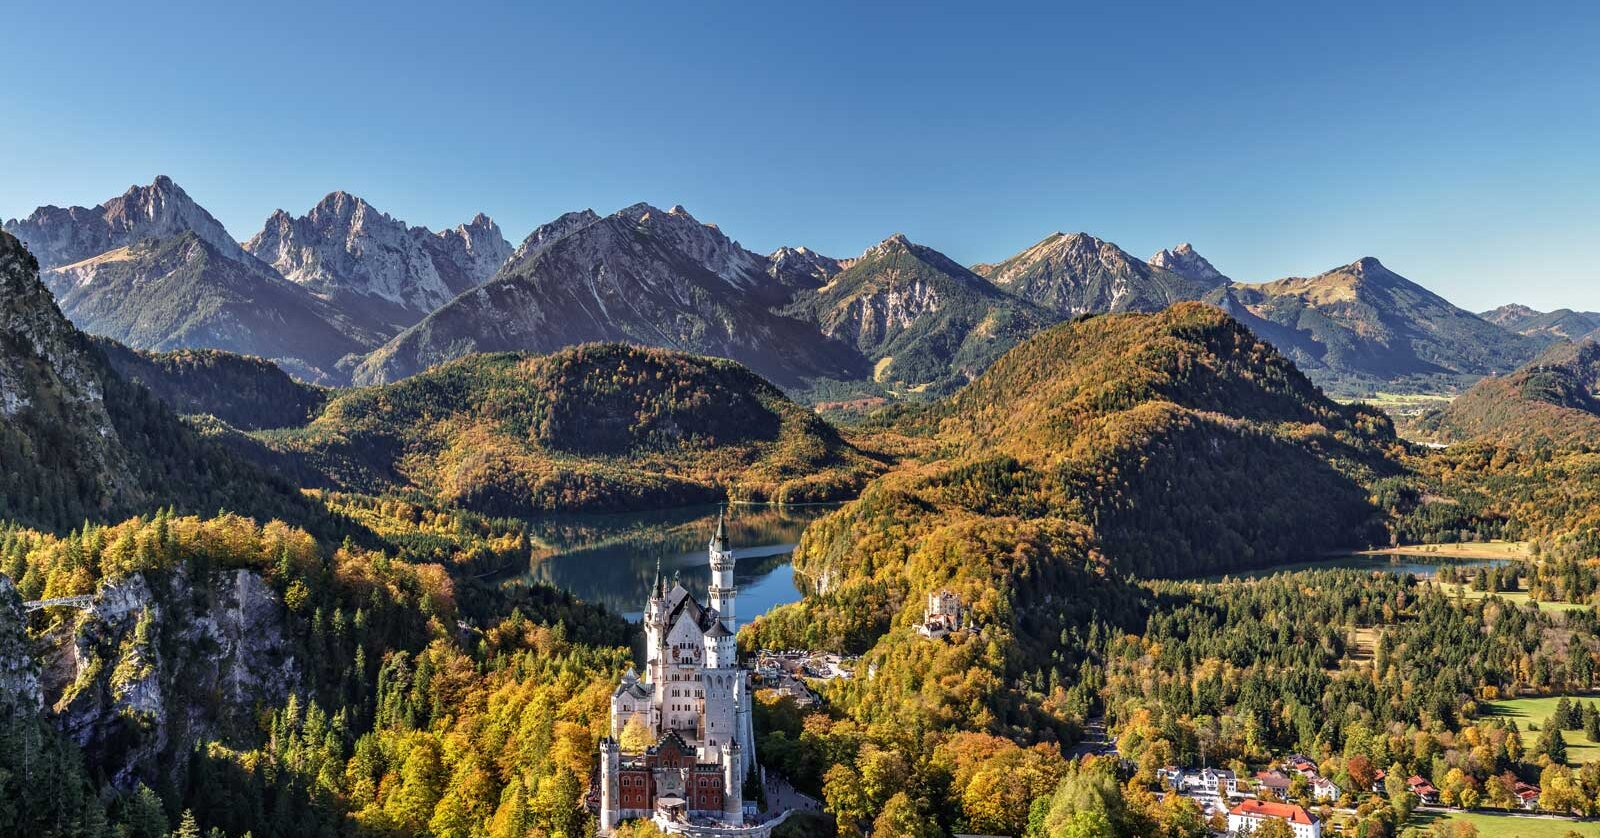 25 Facts About Neuschwanstein Castle in Germany